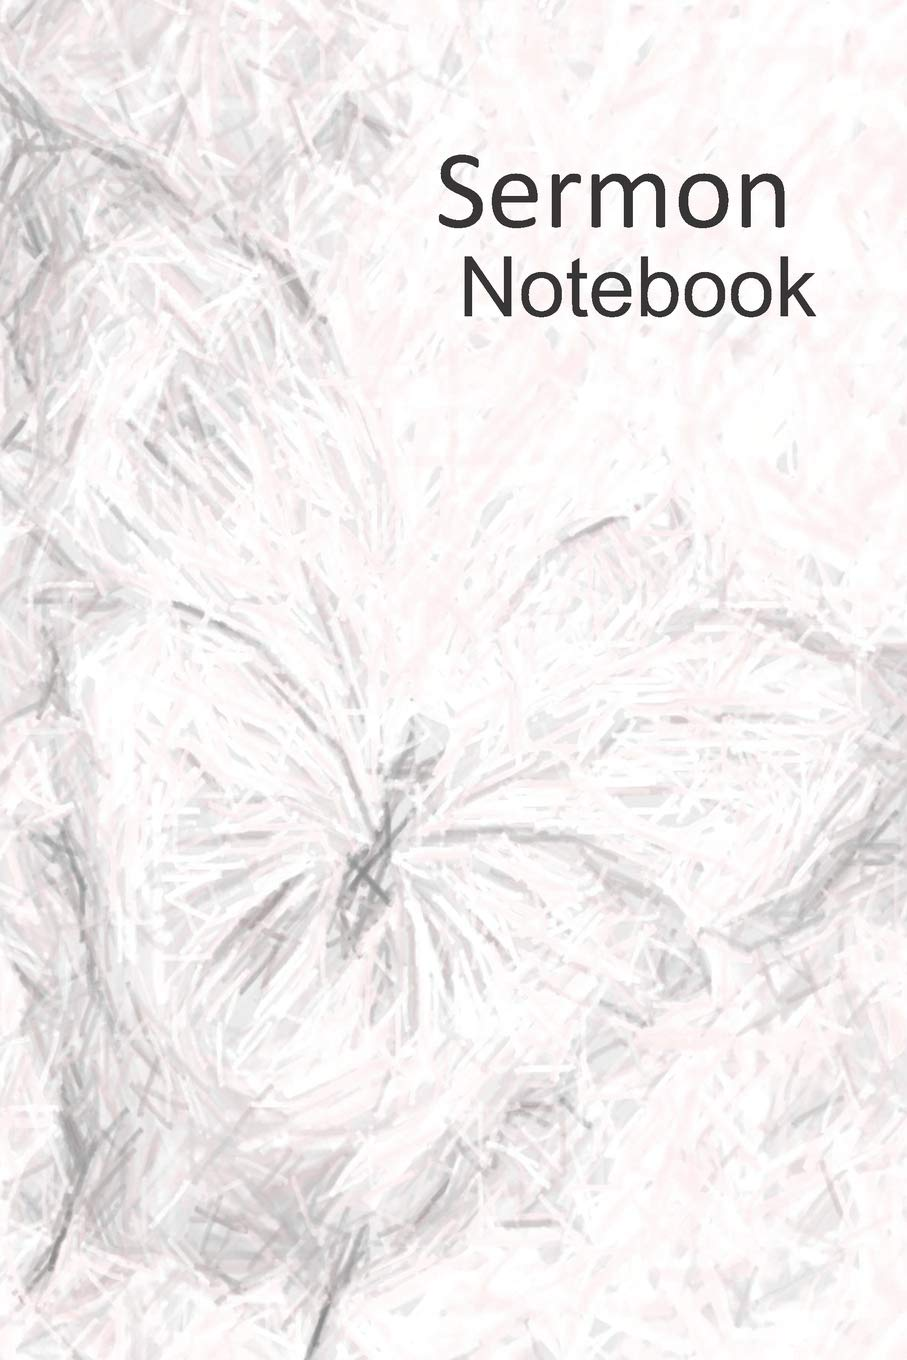 Sermon notebook weekly reflections pencil sketch butterfly design paperback november 20 2018